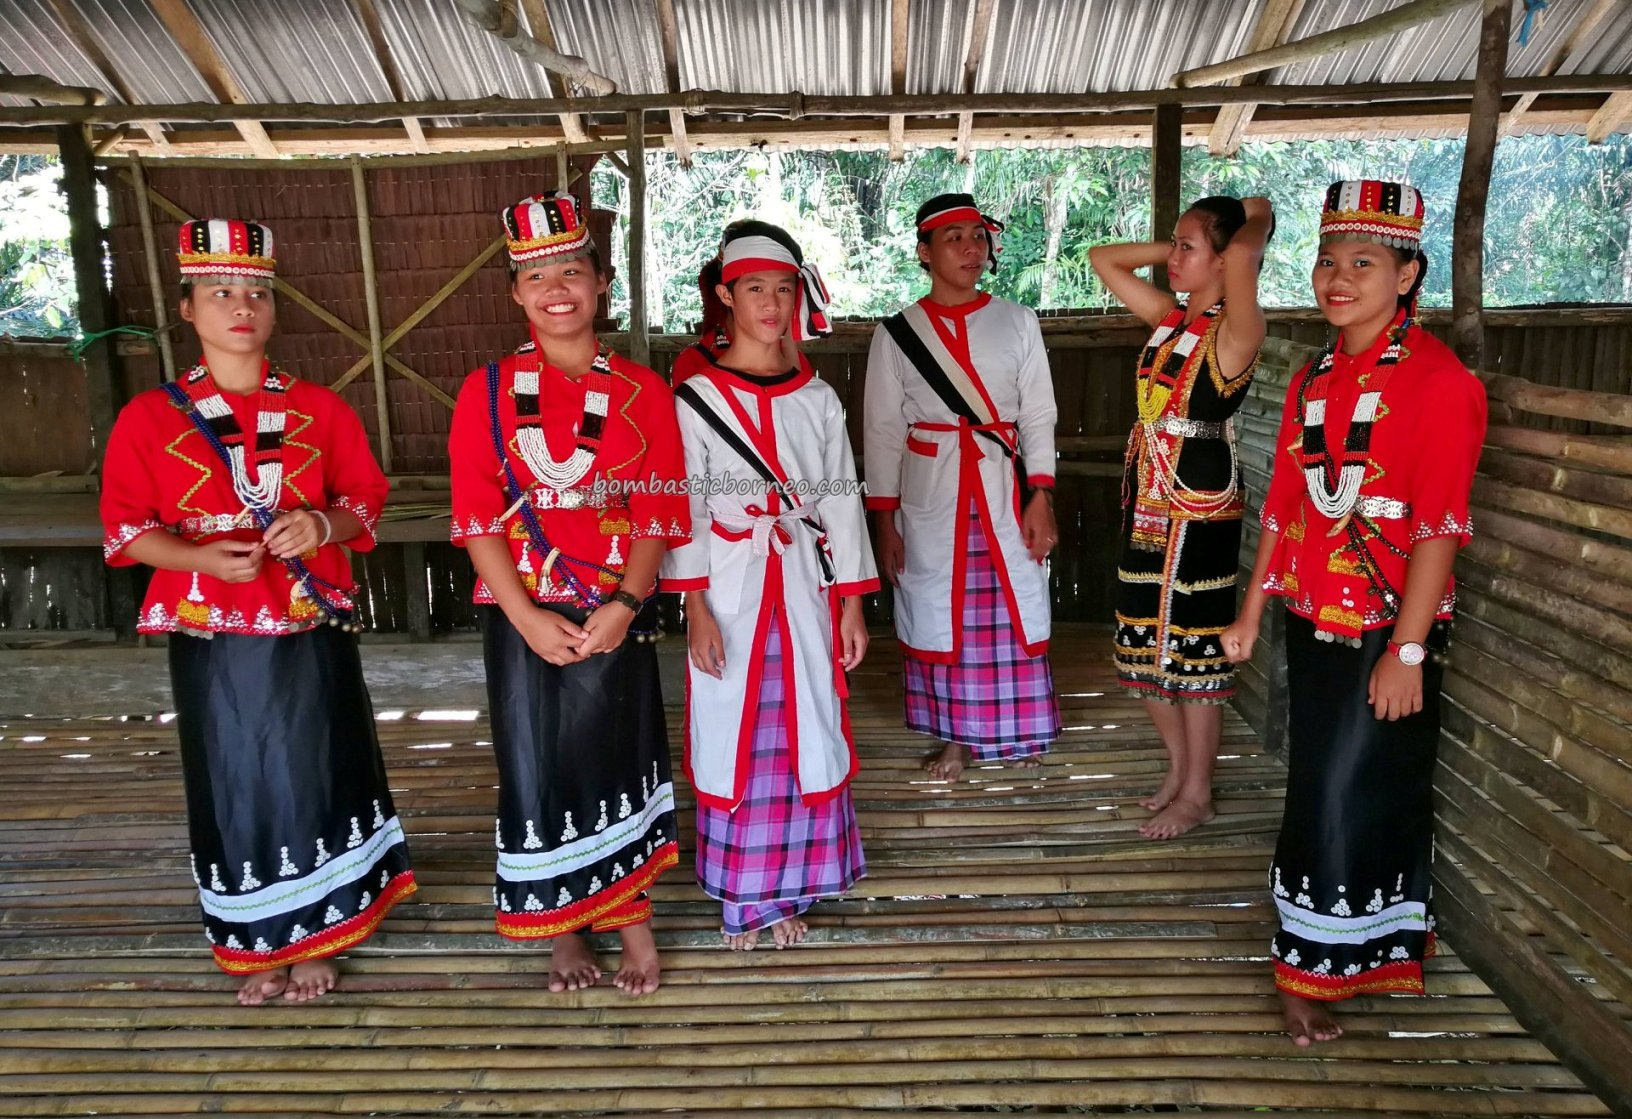 Pesta Batu Si'ib, Kampung Selampit, Paddy Harvest Festival, traditional, indigenous, culture, Borneo, Lundu, Kuching, native, tribal, Tourism, travel guide, crossborder, 砂拉越婆罗洲, 比达友族丰收节日